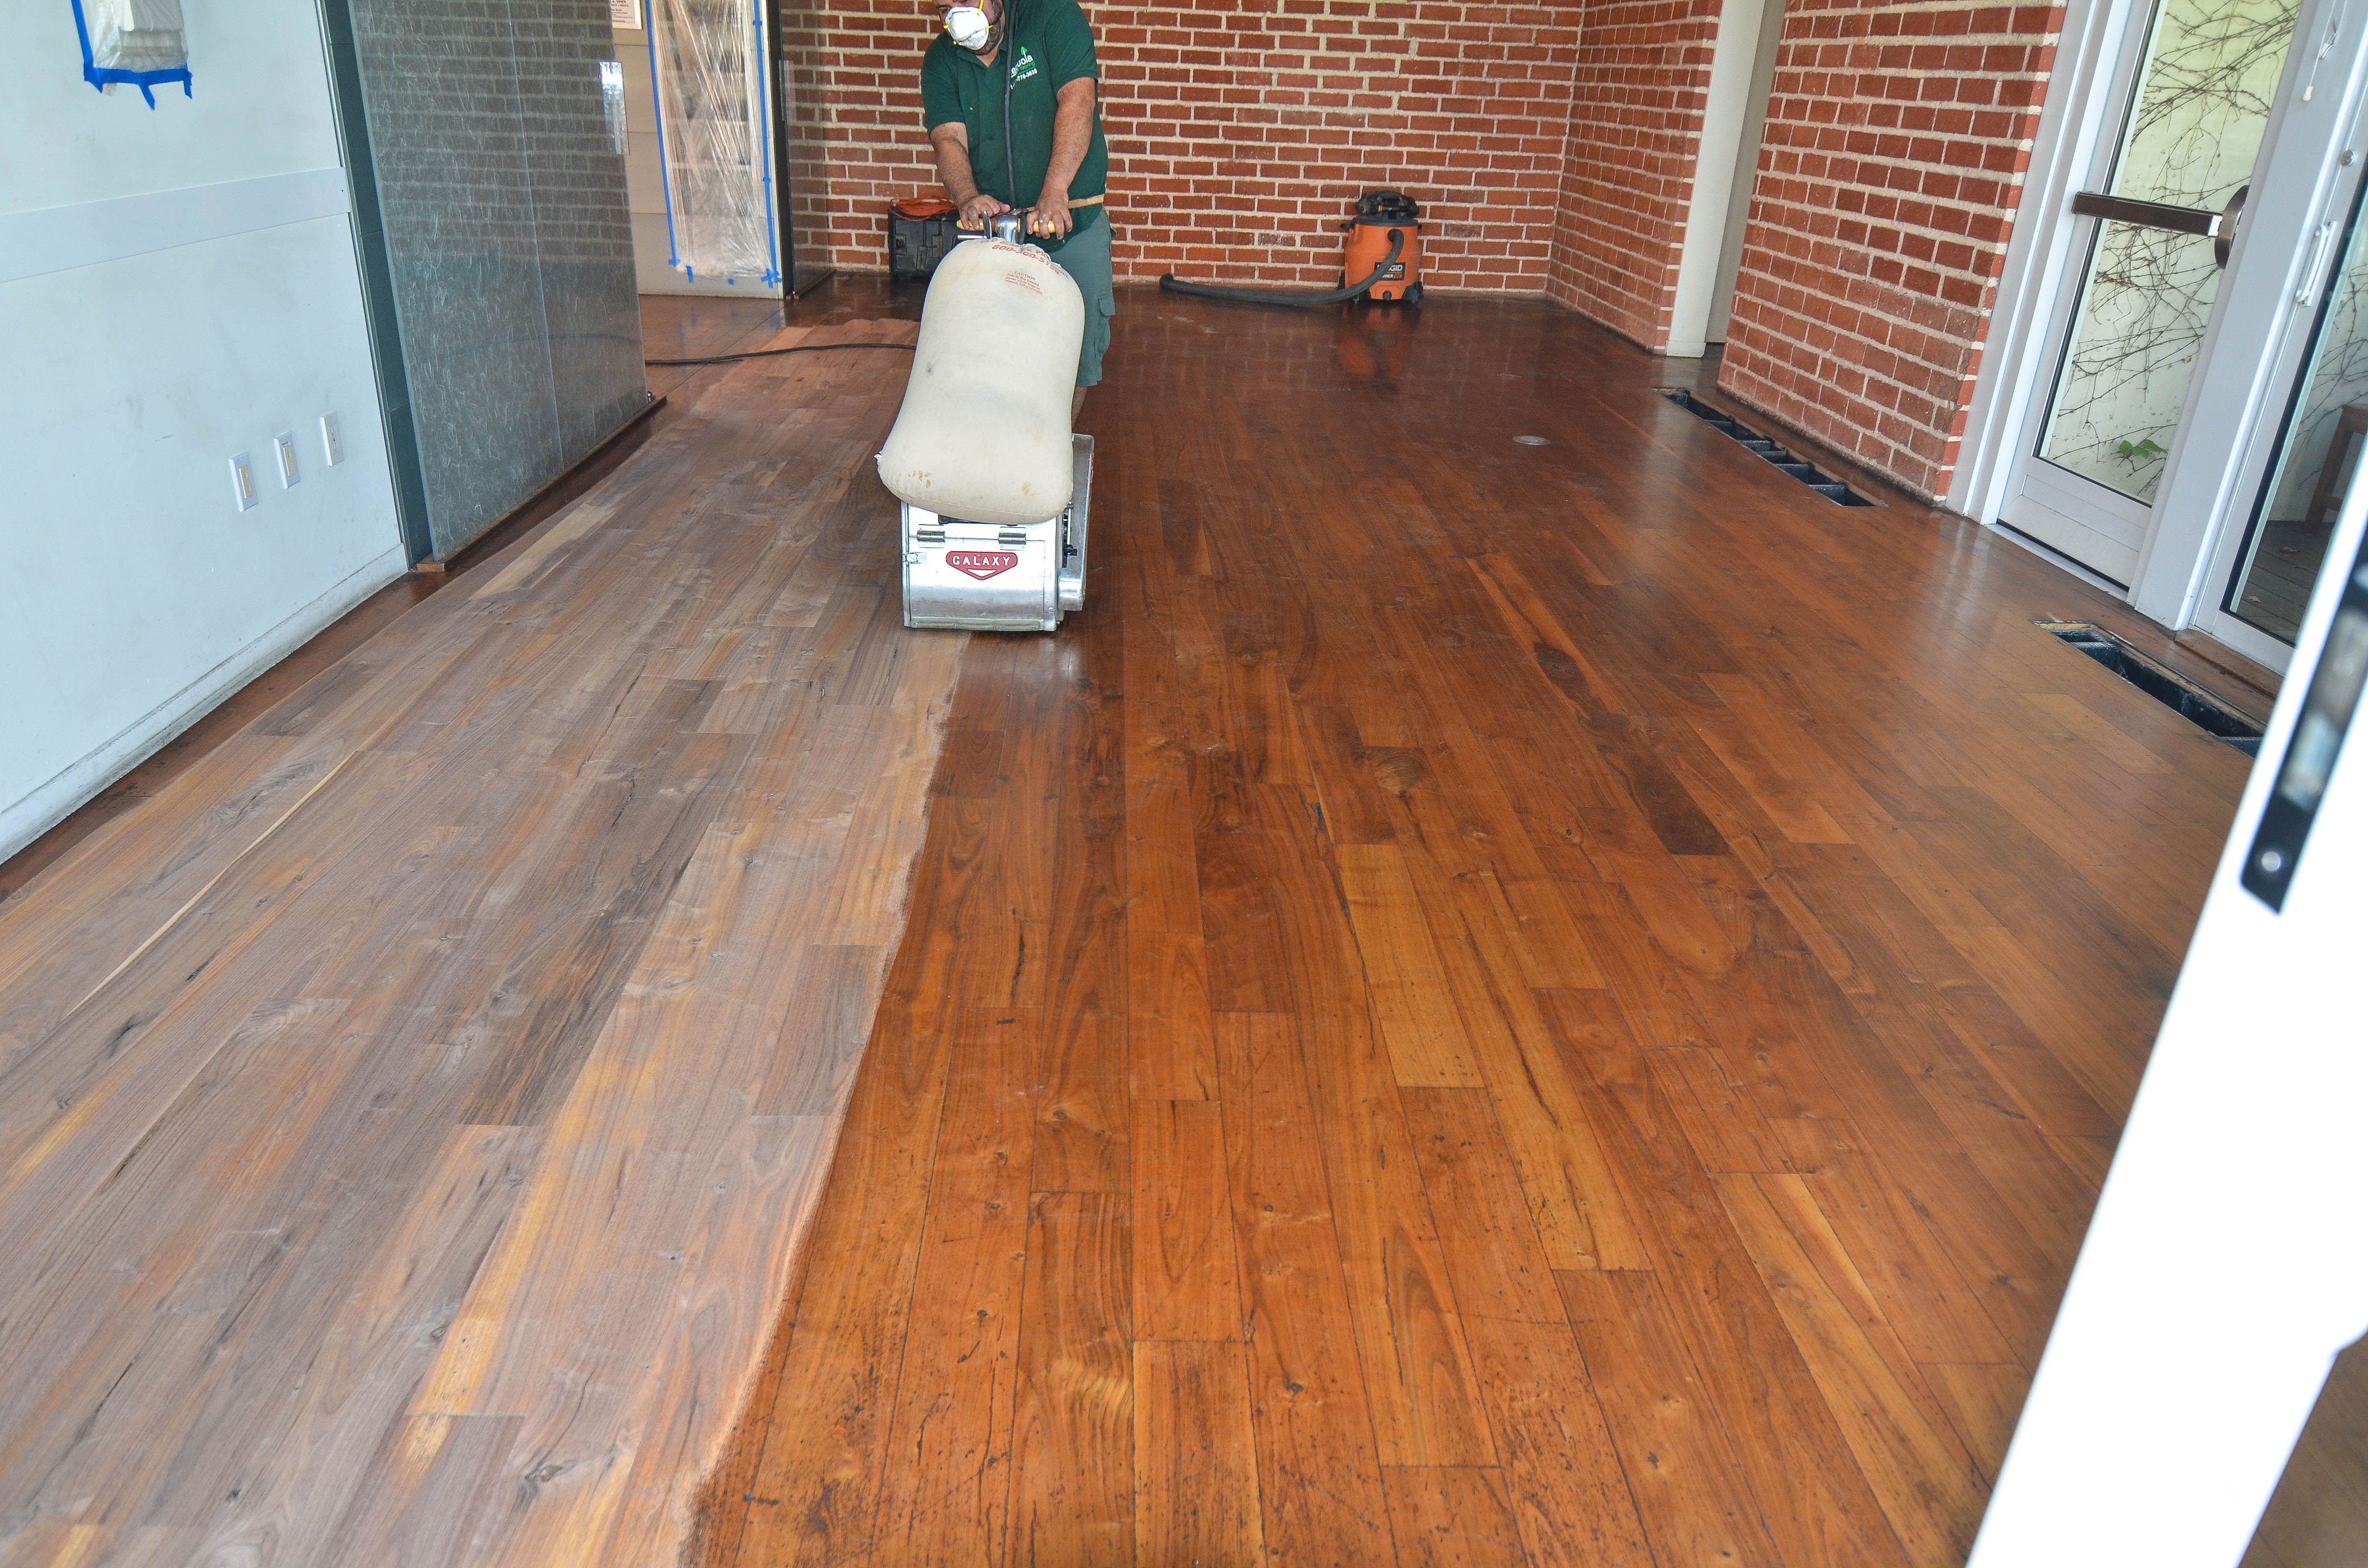 Flooring contractor image by Sequoia flooring on